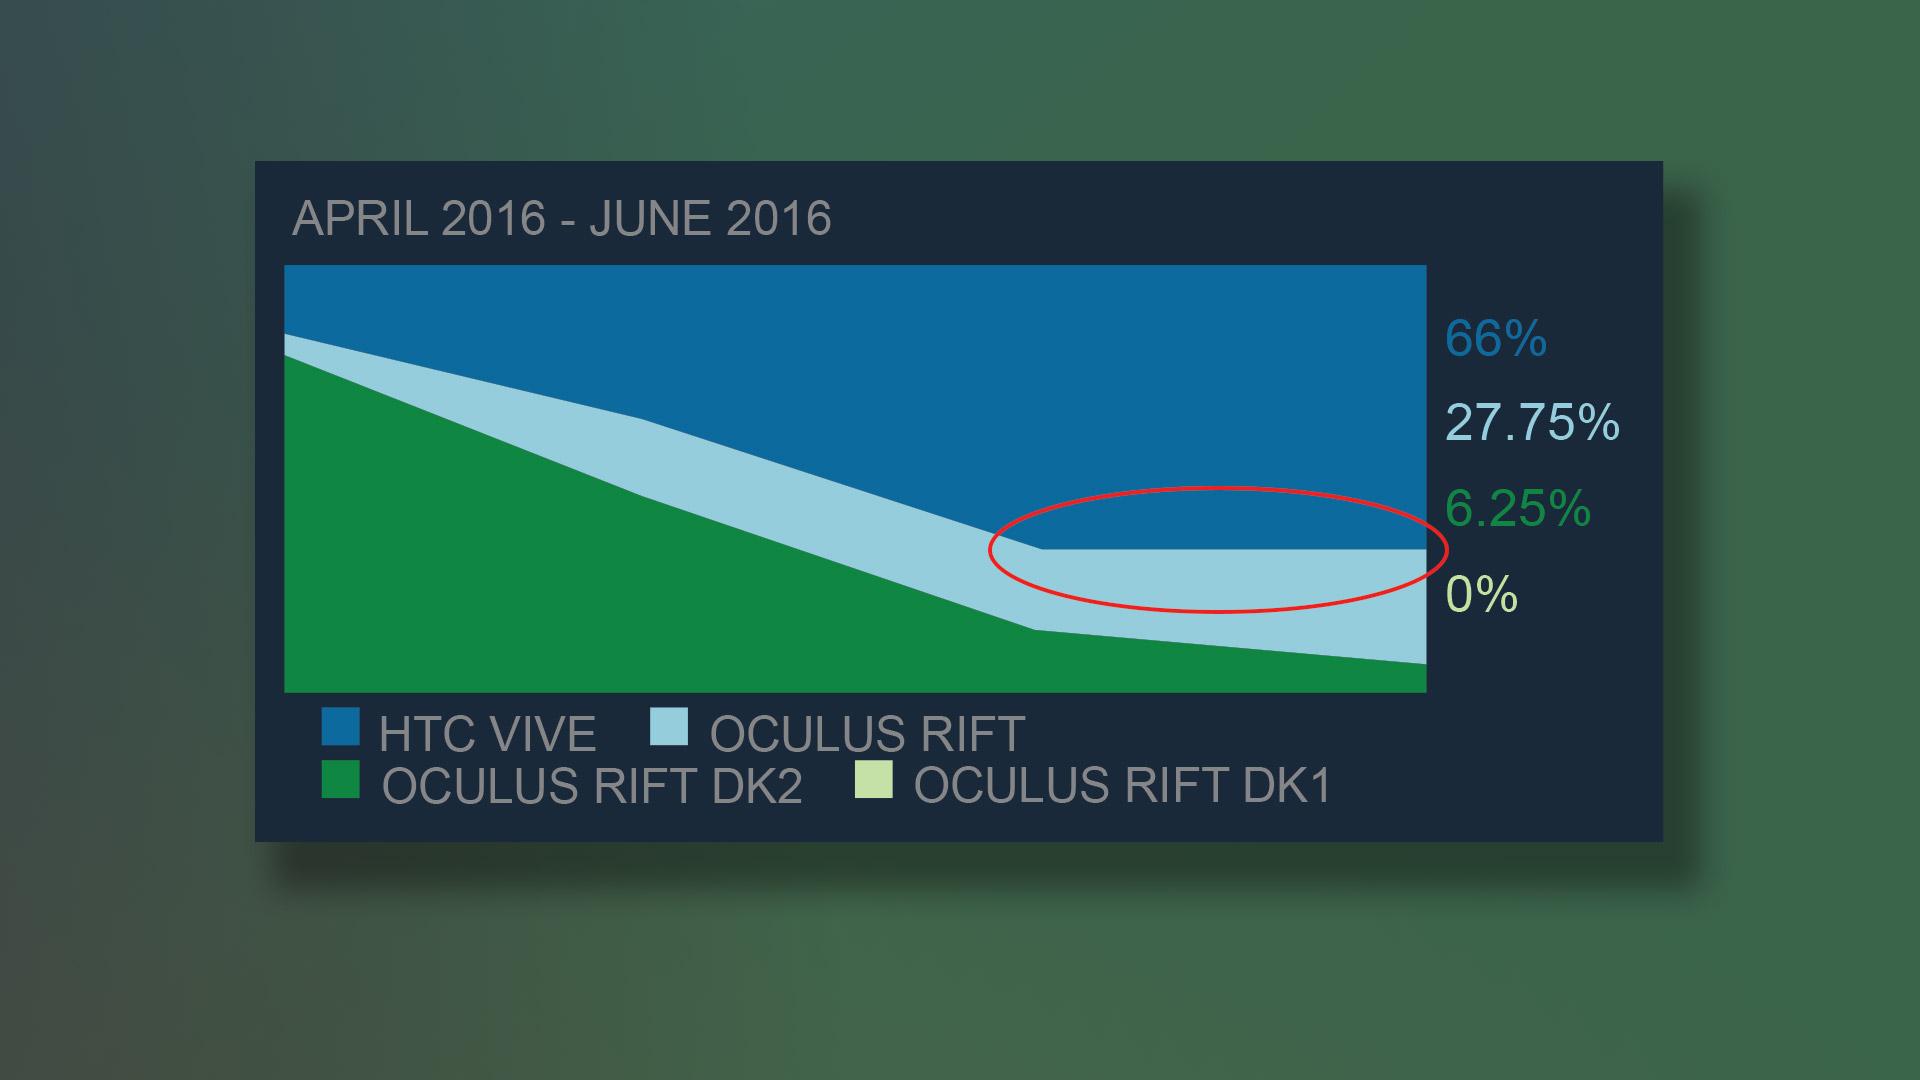 Oculus Rift Halts HTC Vive Market Share Expansion - Road to VR